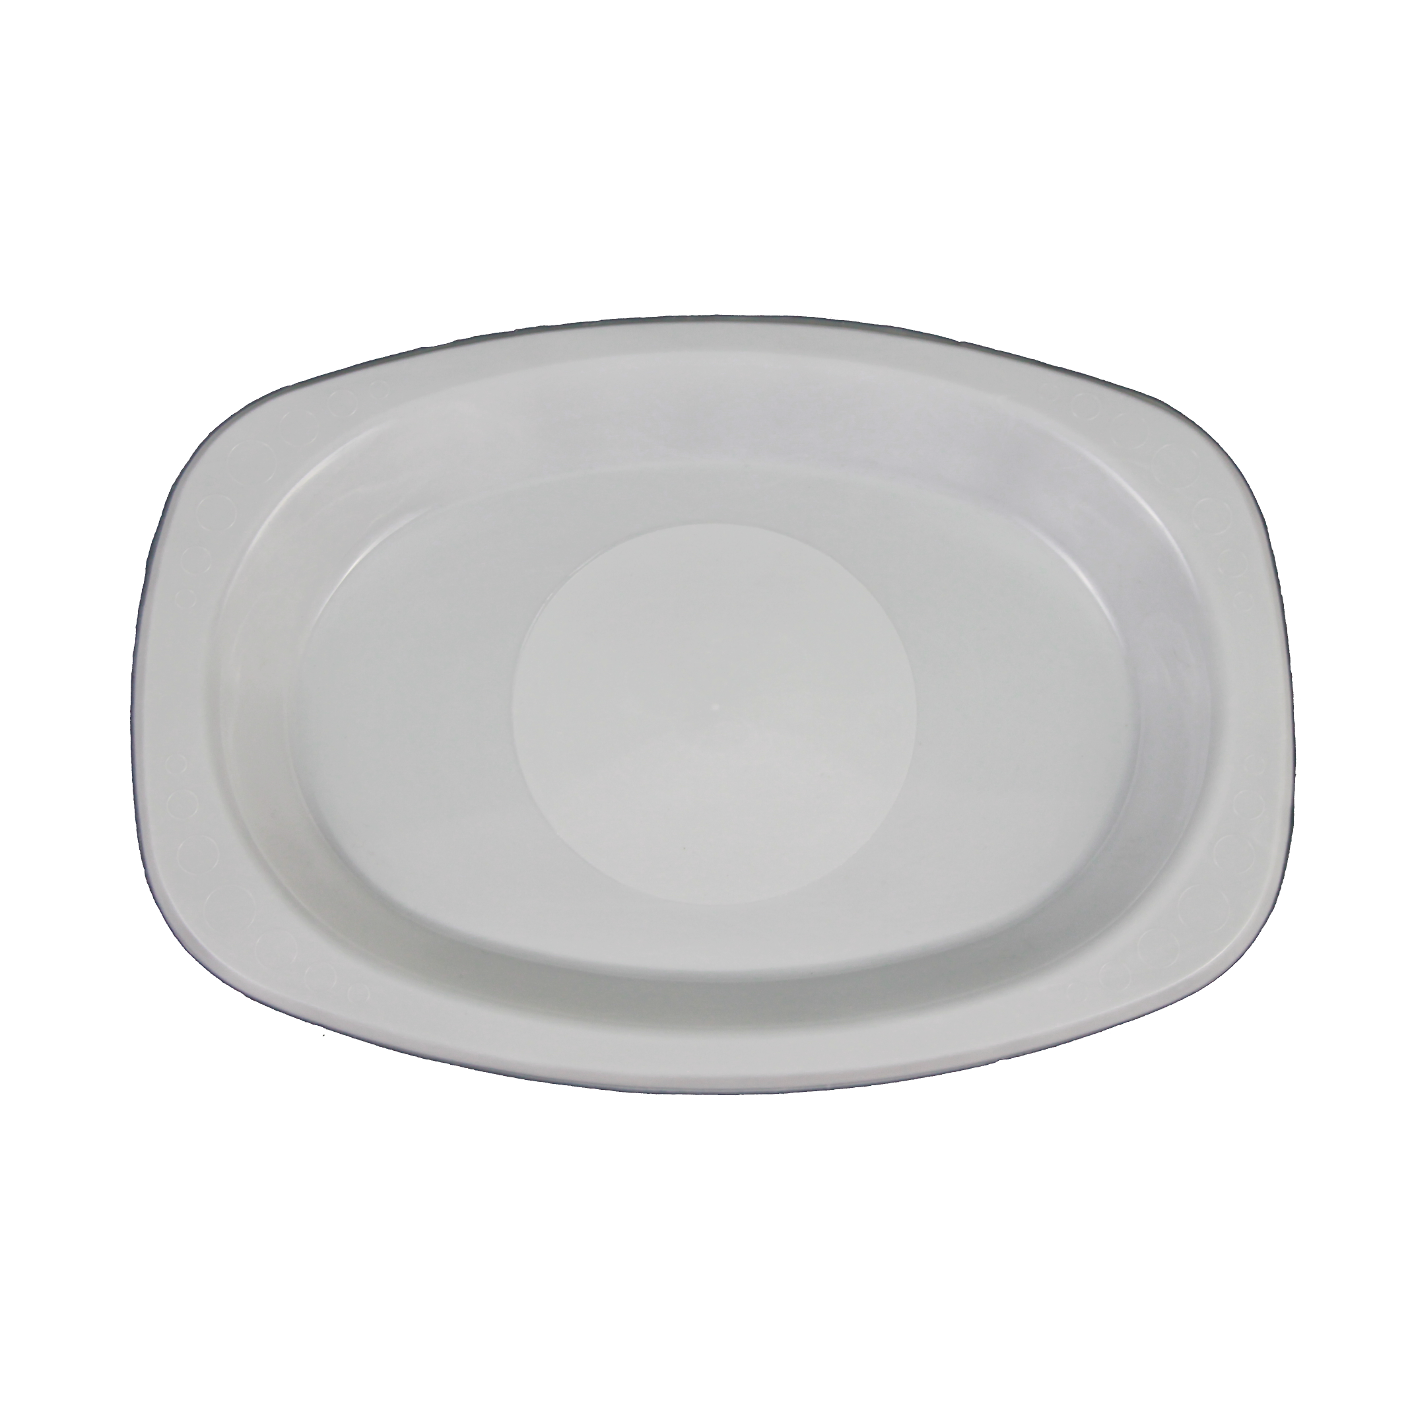 Genfac Oval Plate Large 210x300mm White